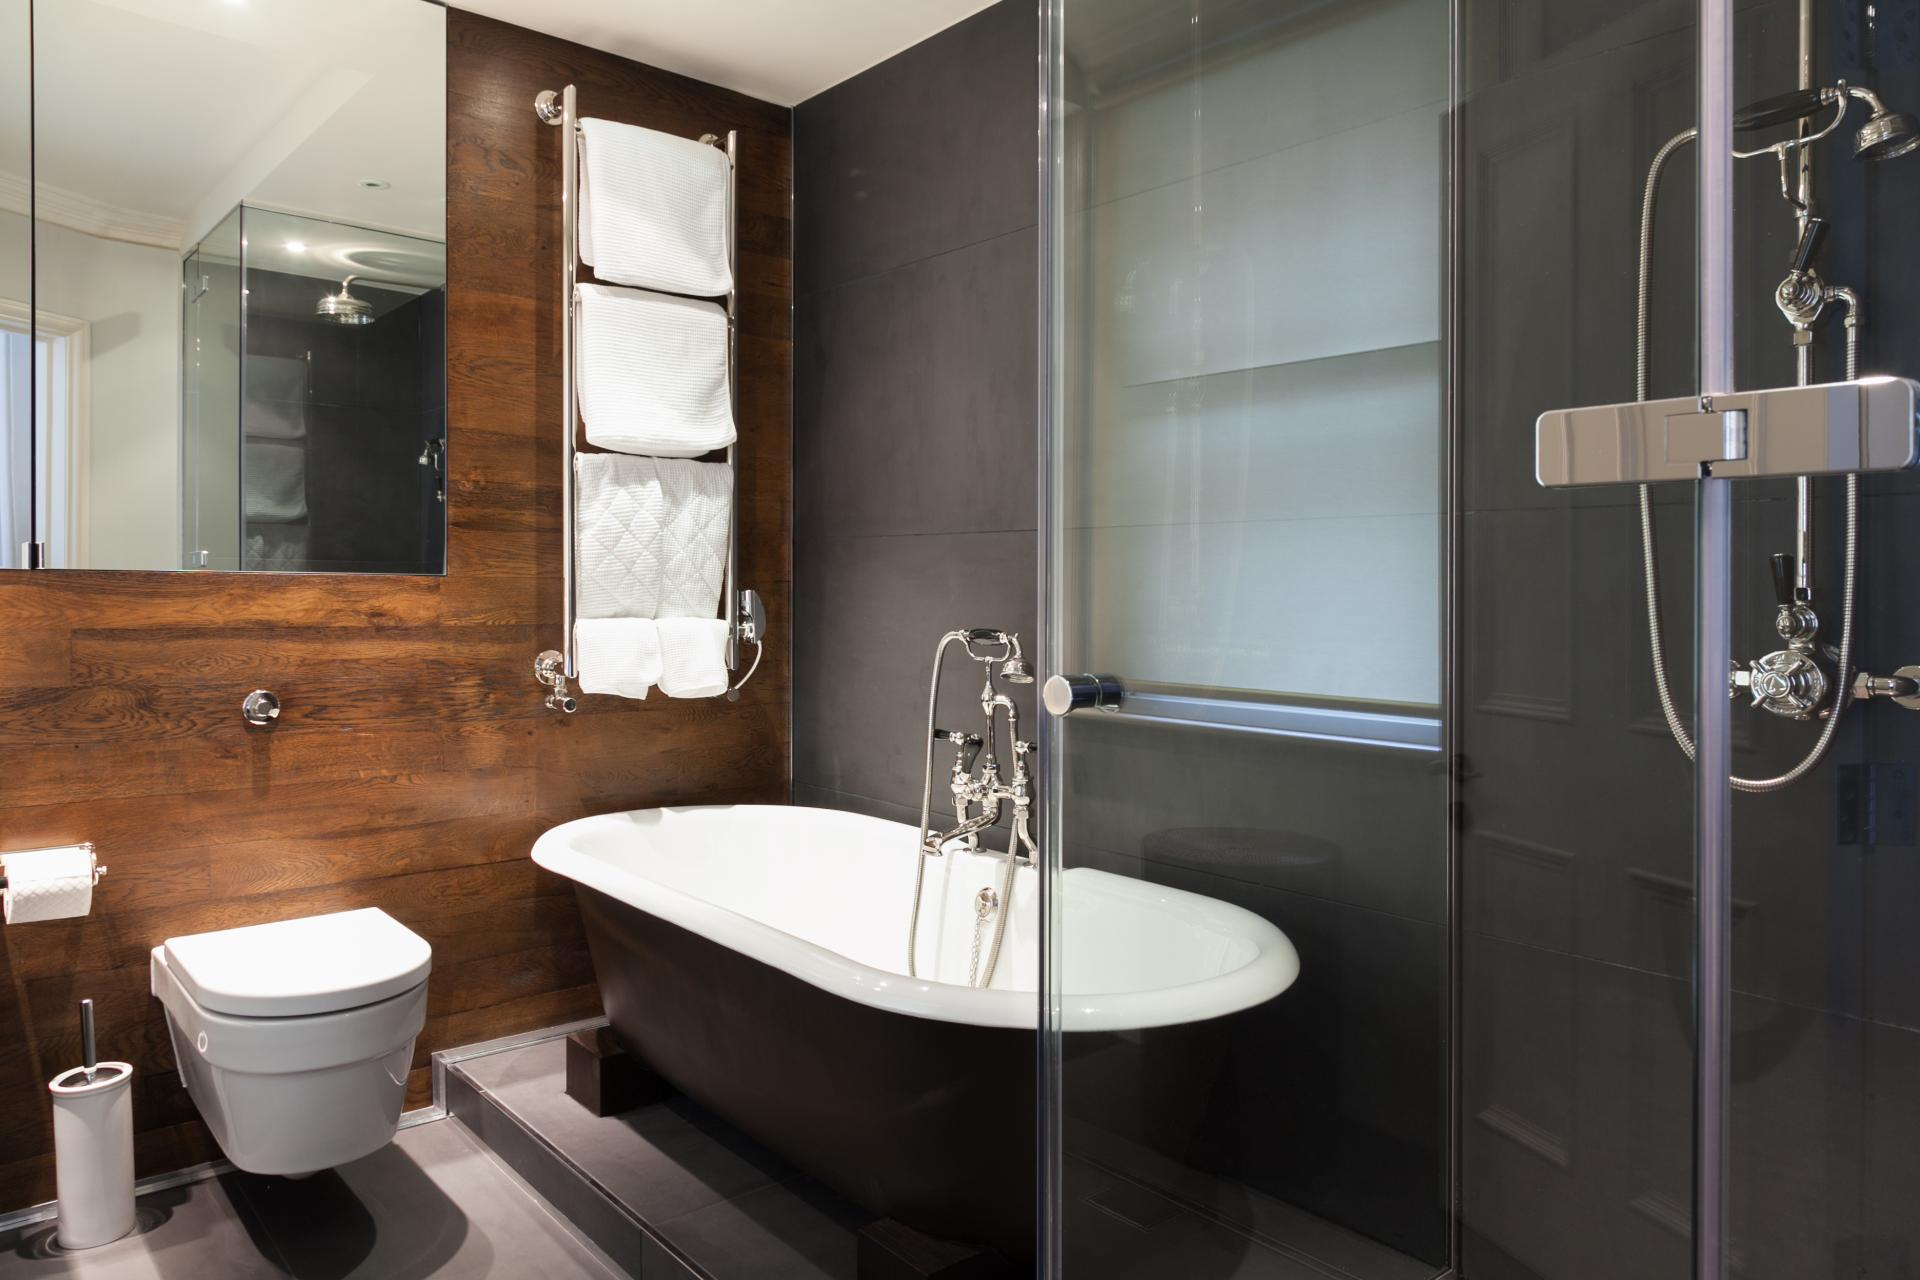 Bath and shower at Luxurious Mayfair Apartments, Mayfair, London